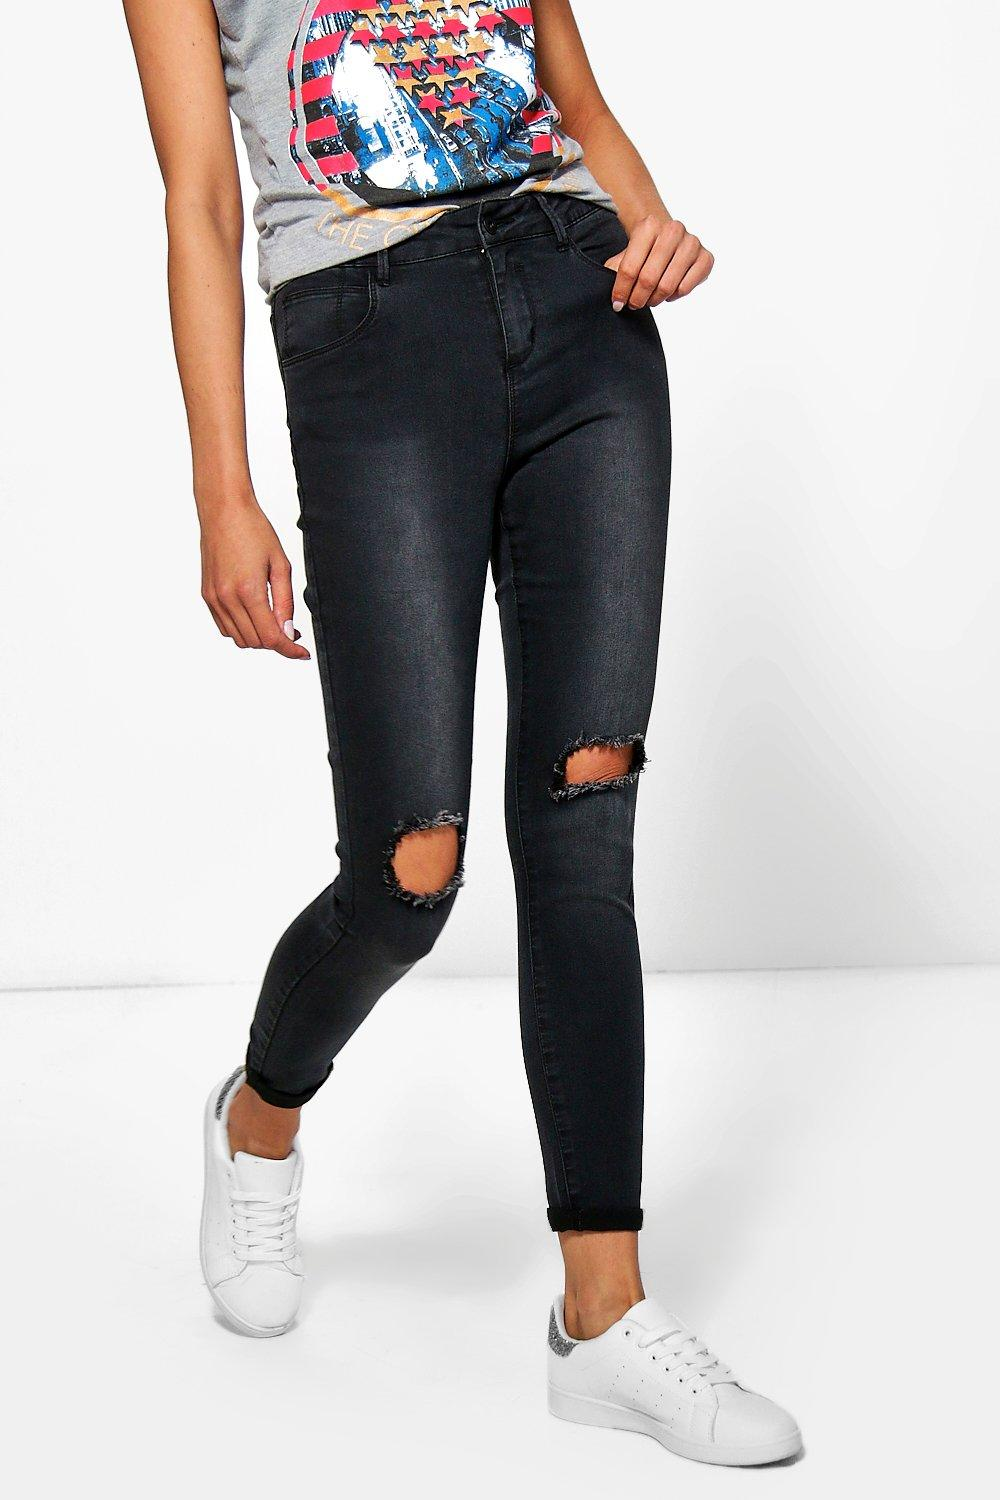 Kaia Mid Rise Open Knee Skinny Jeans